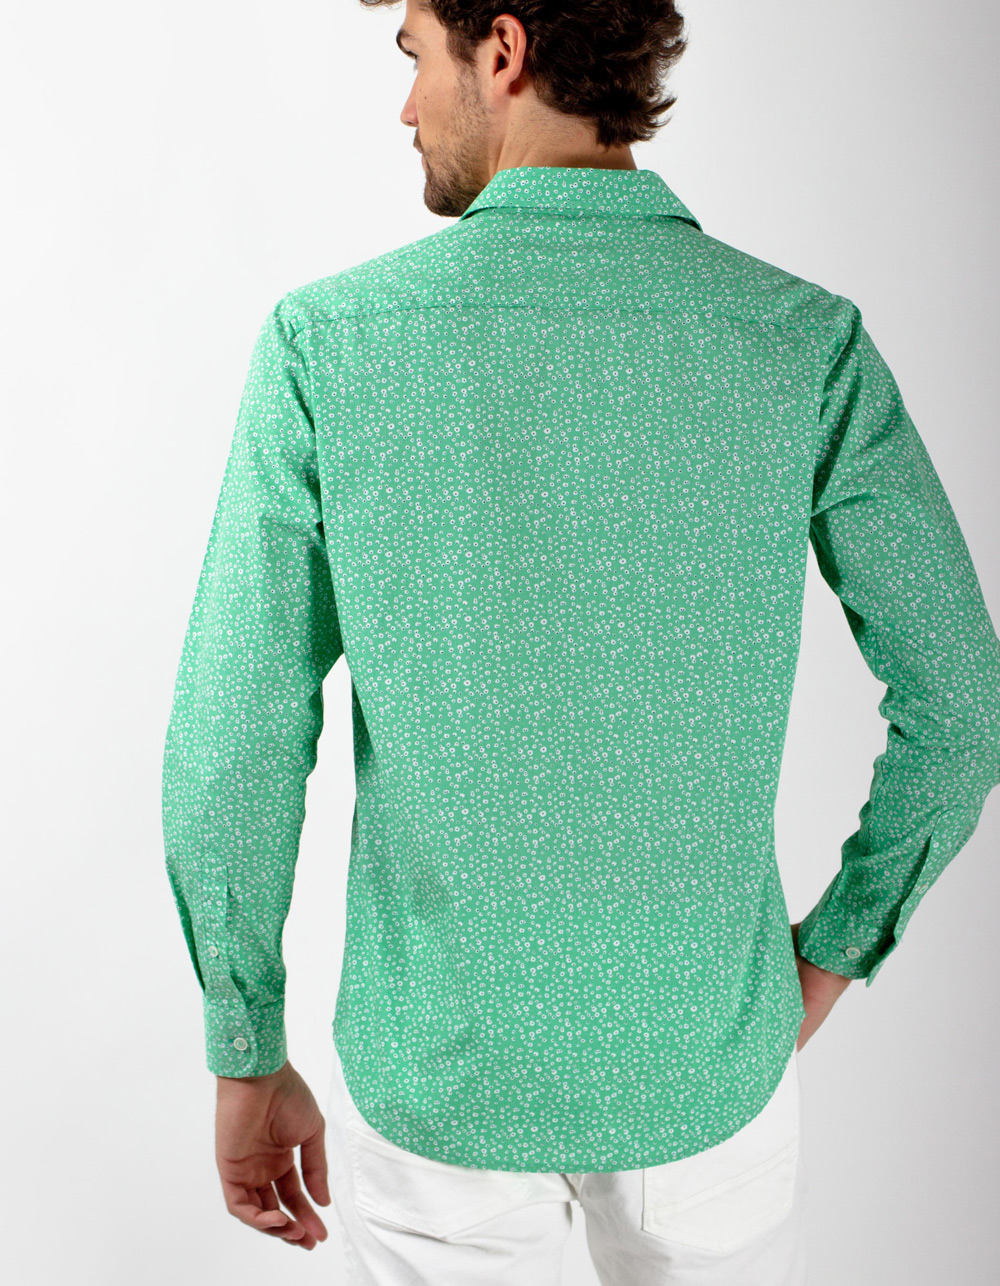 Camisa verde flores - Backside